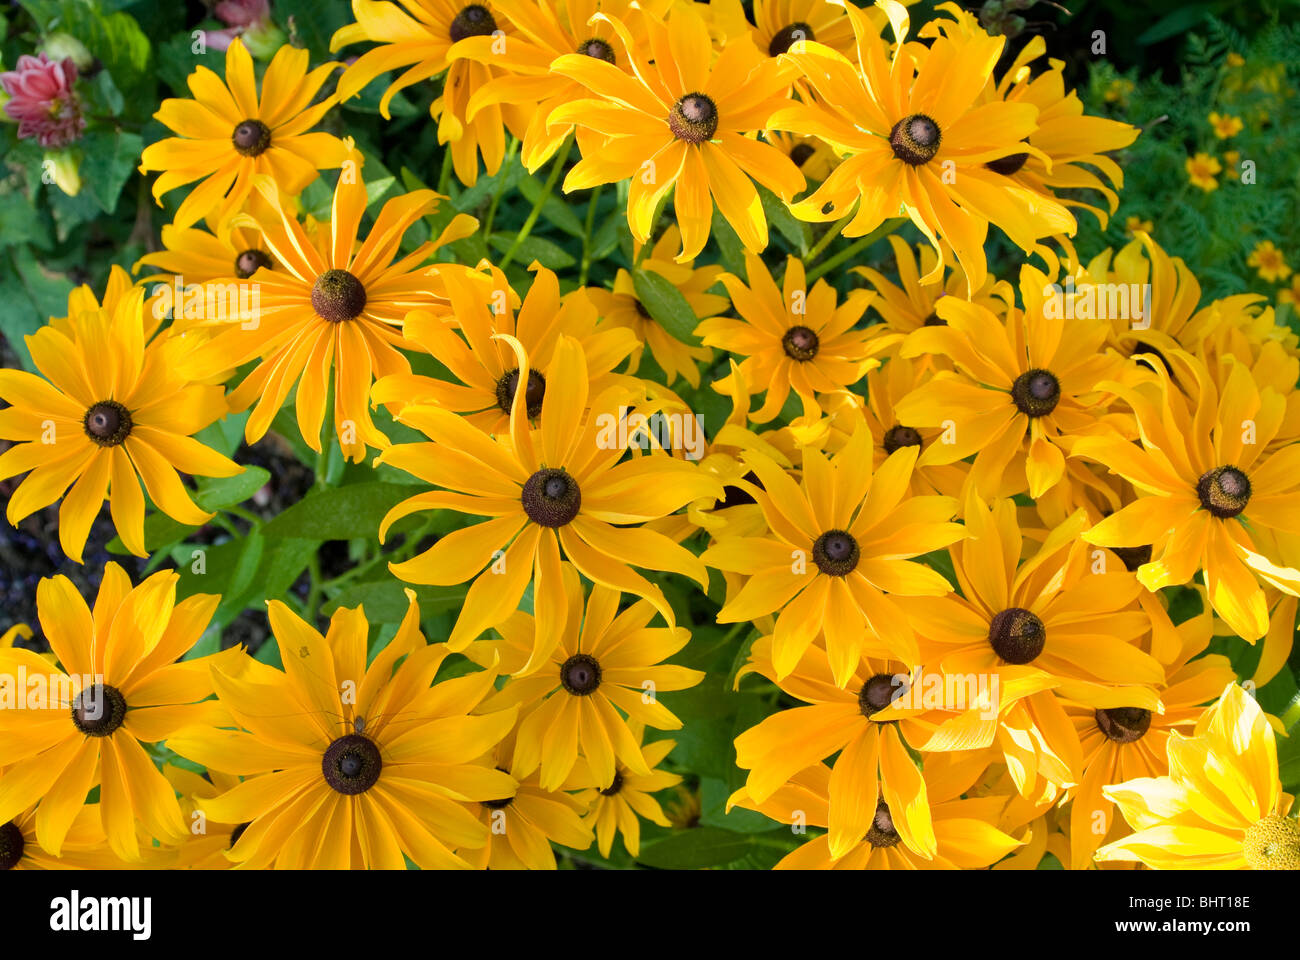 gelbe blumen sonnenhut deutschland yellow flowers germany stock photo 28187390 alamy. Black Bedroom Furniture Sets. Home Design Ideas